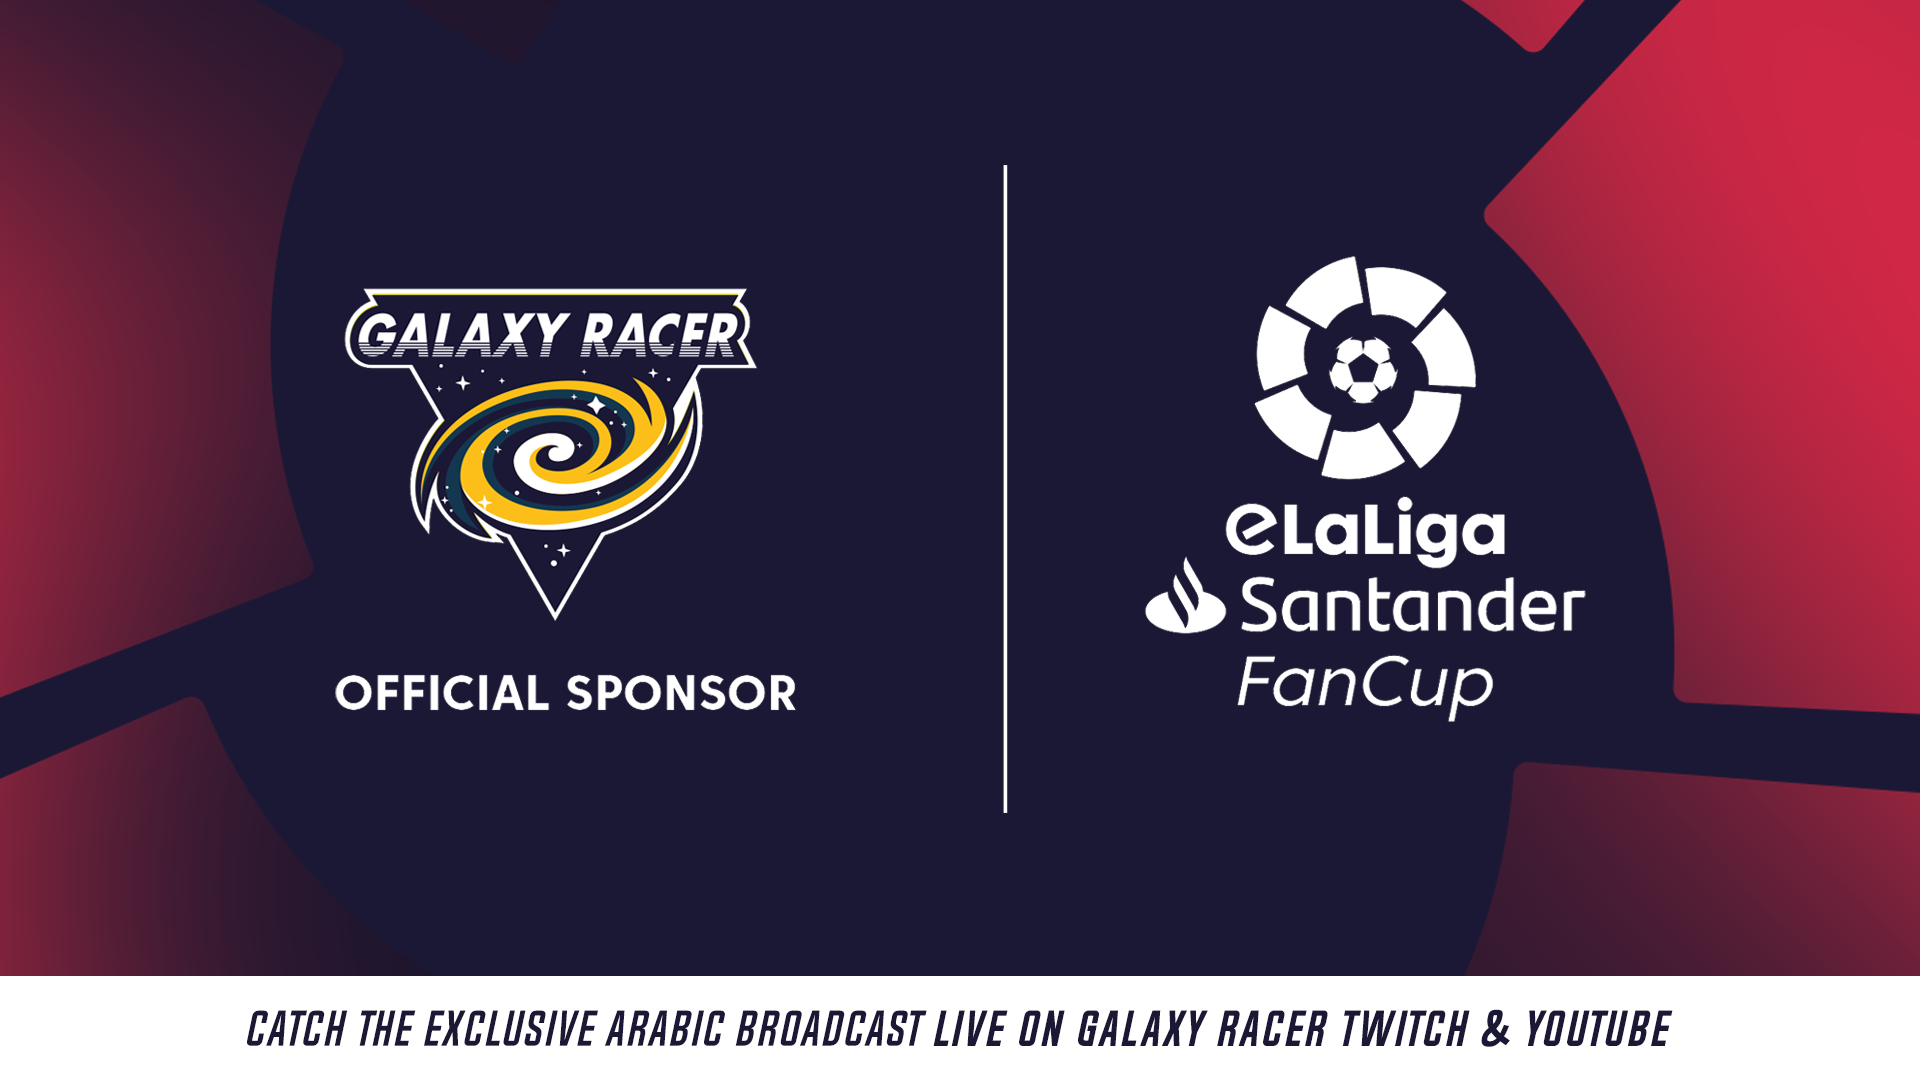 Dubai-based org Galaxy Racer announces partnership with eLaliga